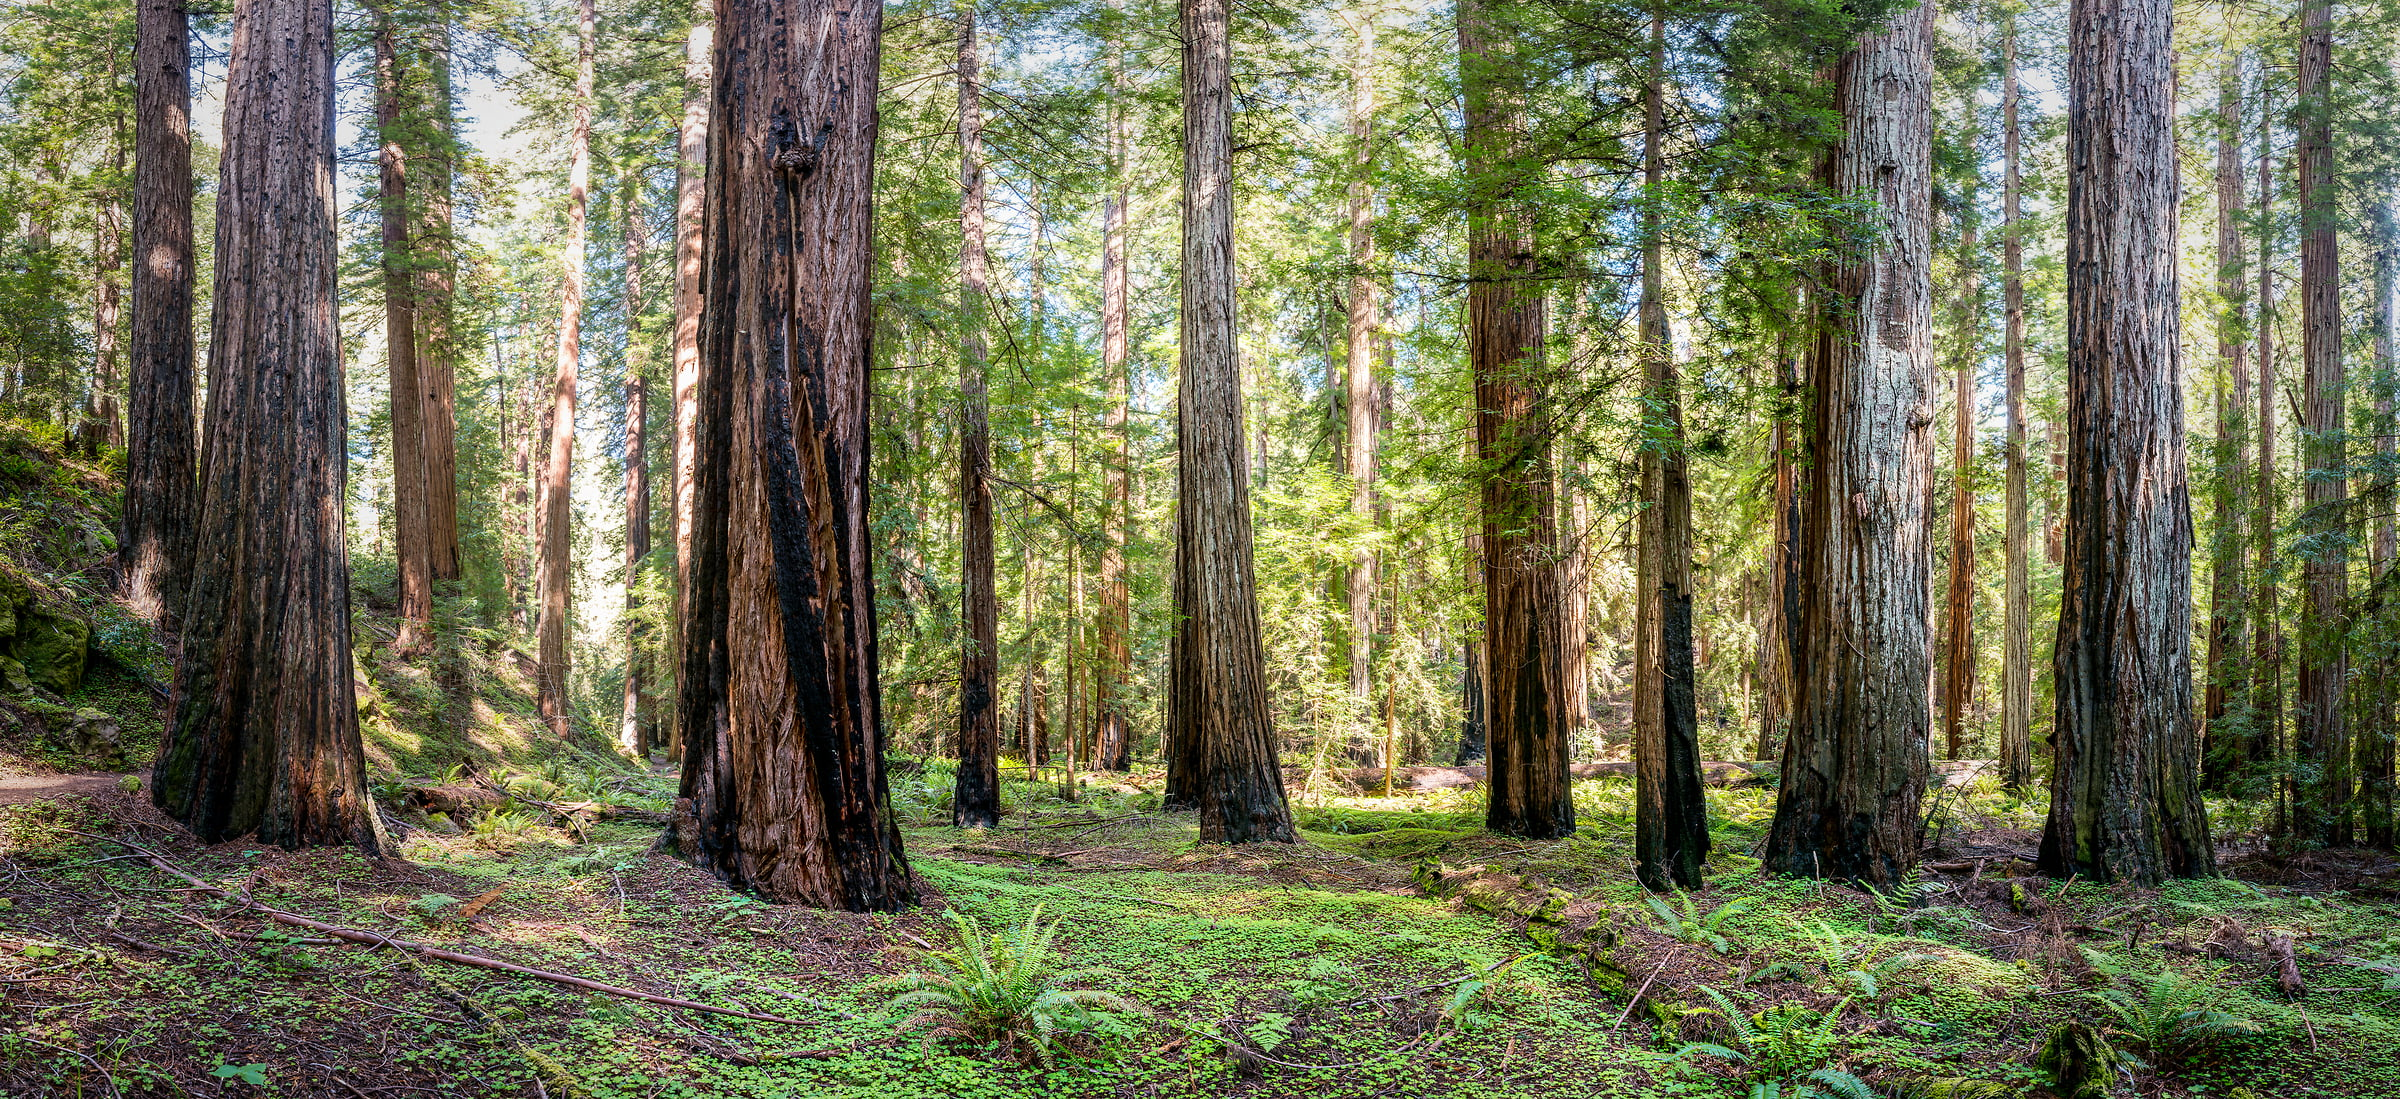 632 megapixels! A very high resolution, large-format VAST photo of a redwood forest; fine art nature photo created by Justin Katz in Montgomery Woods State Reserve, California